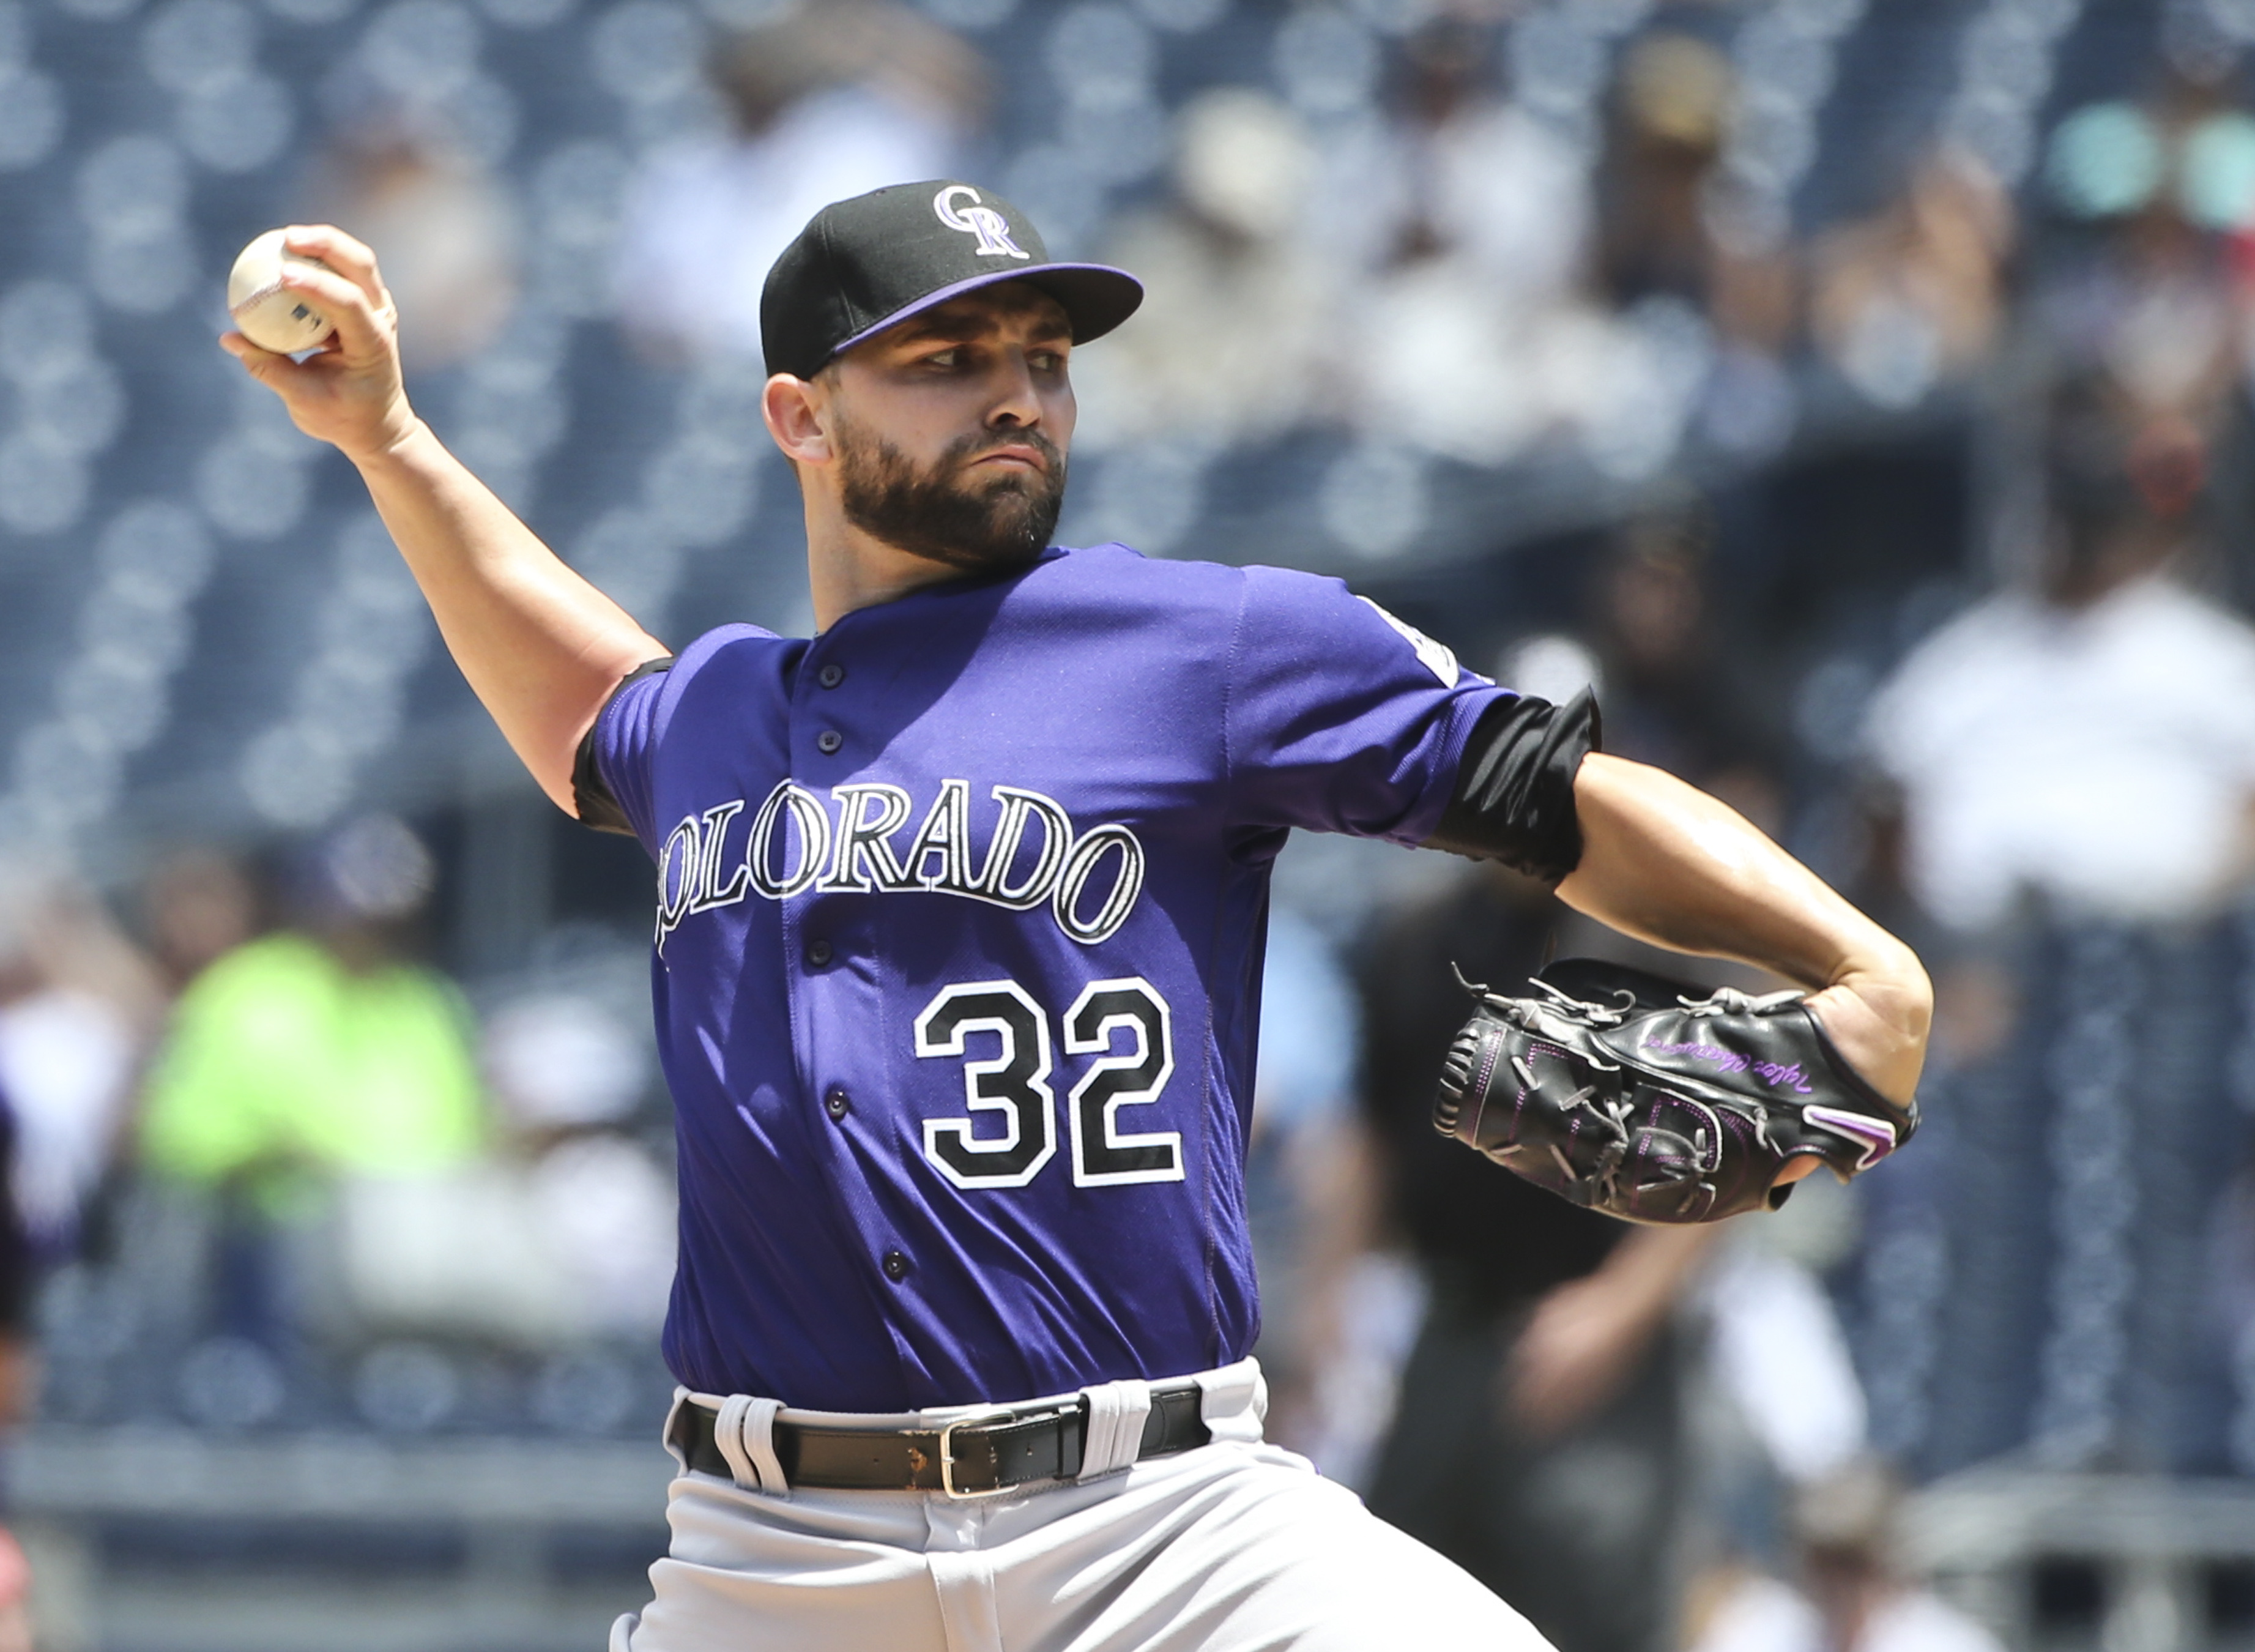 Colorado Rockies starting pitcher Tyler Chatwood throws against the San Diego Padres in the first inning of a baseball game Wednesday, May 4, 2016, in San Diego. (AP Photo/Lenny Ignelzi)